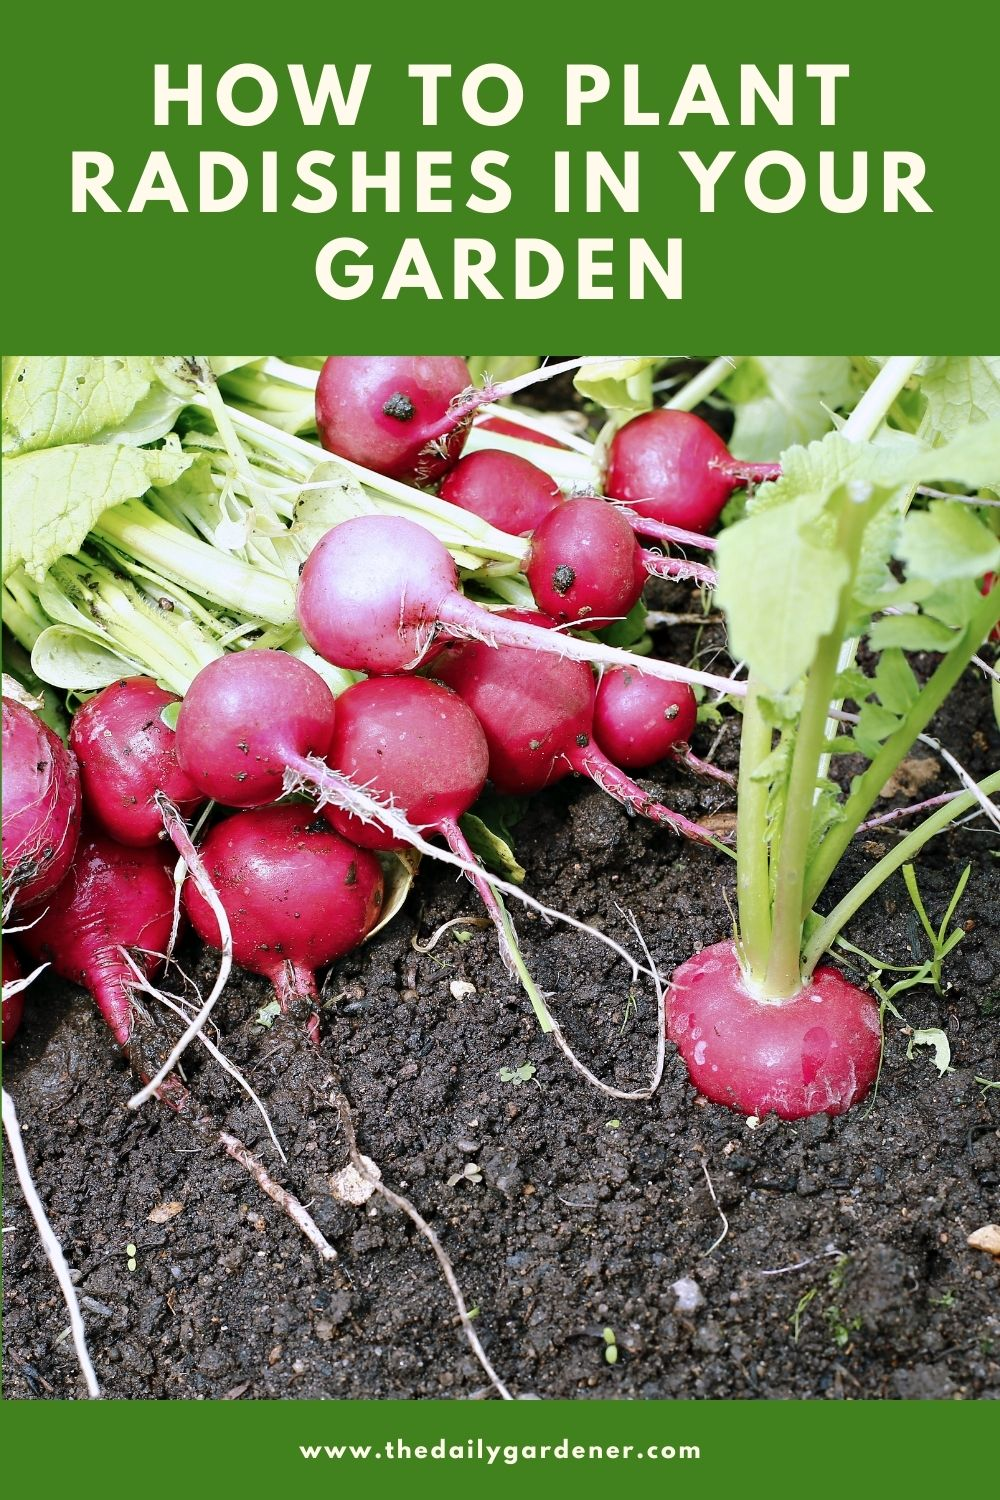 How to Plant Radishes in Your Garden 1